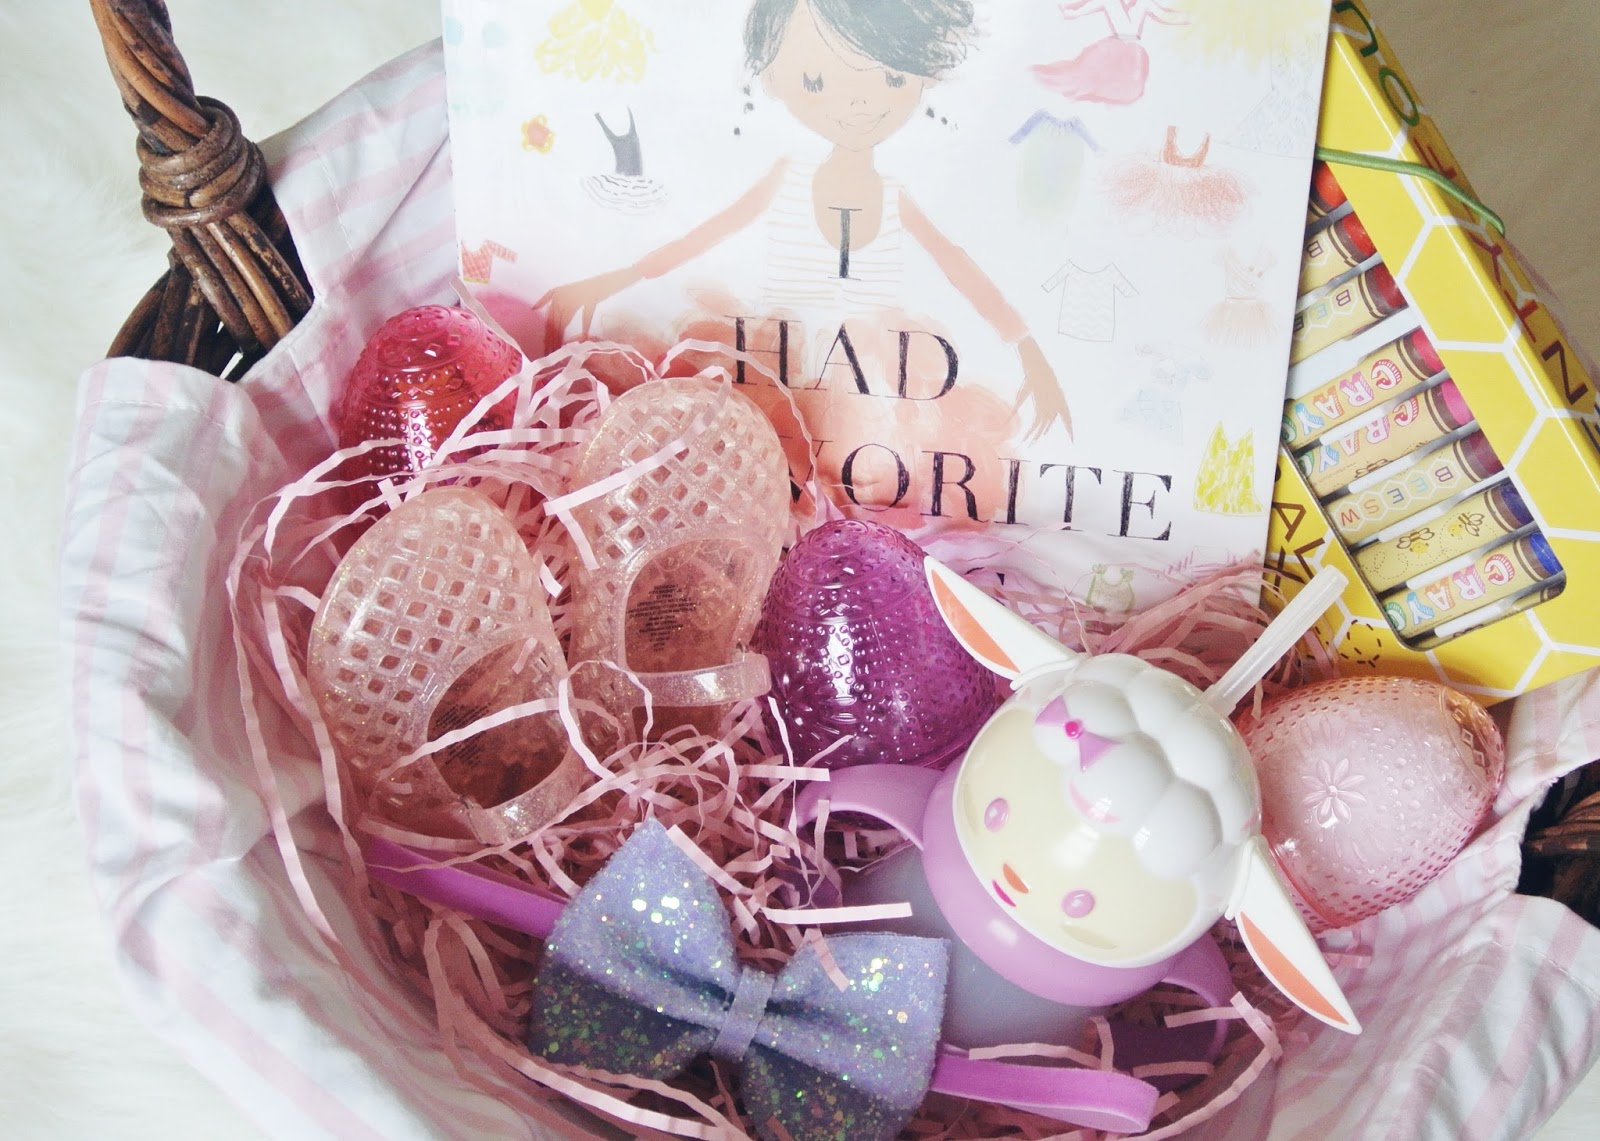 Easter basket goodies garvinandco i always love putting a book in her basket this year i chose i had a favorite dress which is so fitting because she has been playing dress up every day negle Image collections